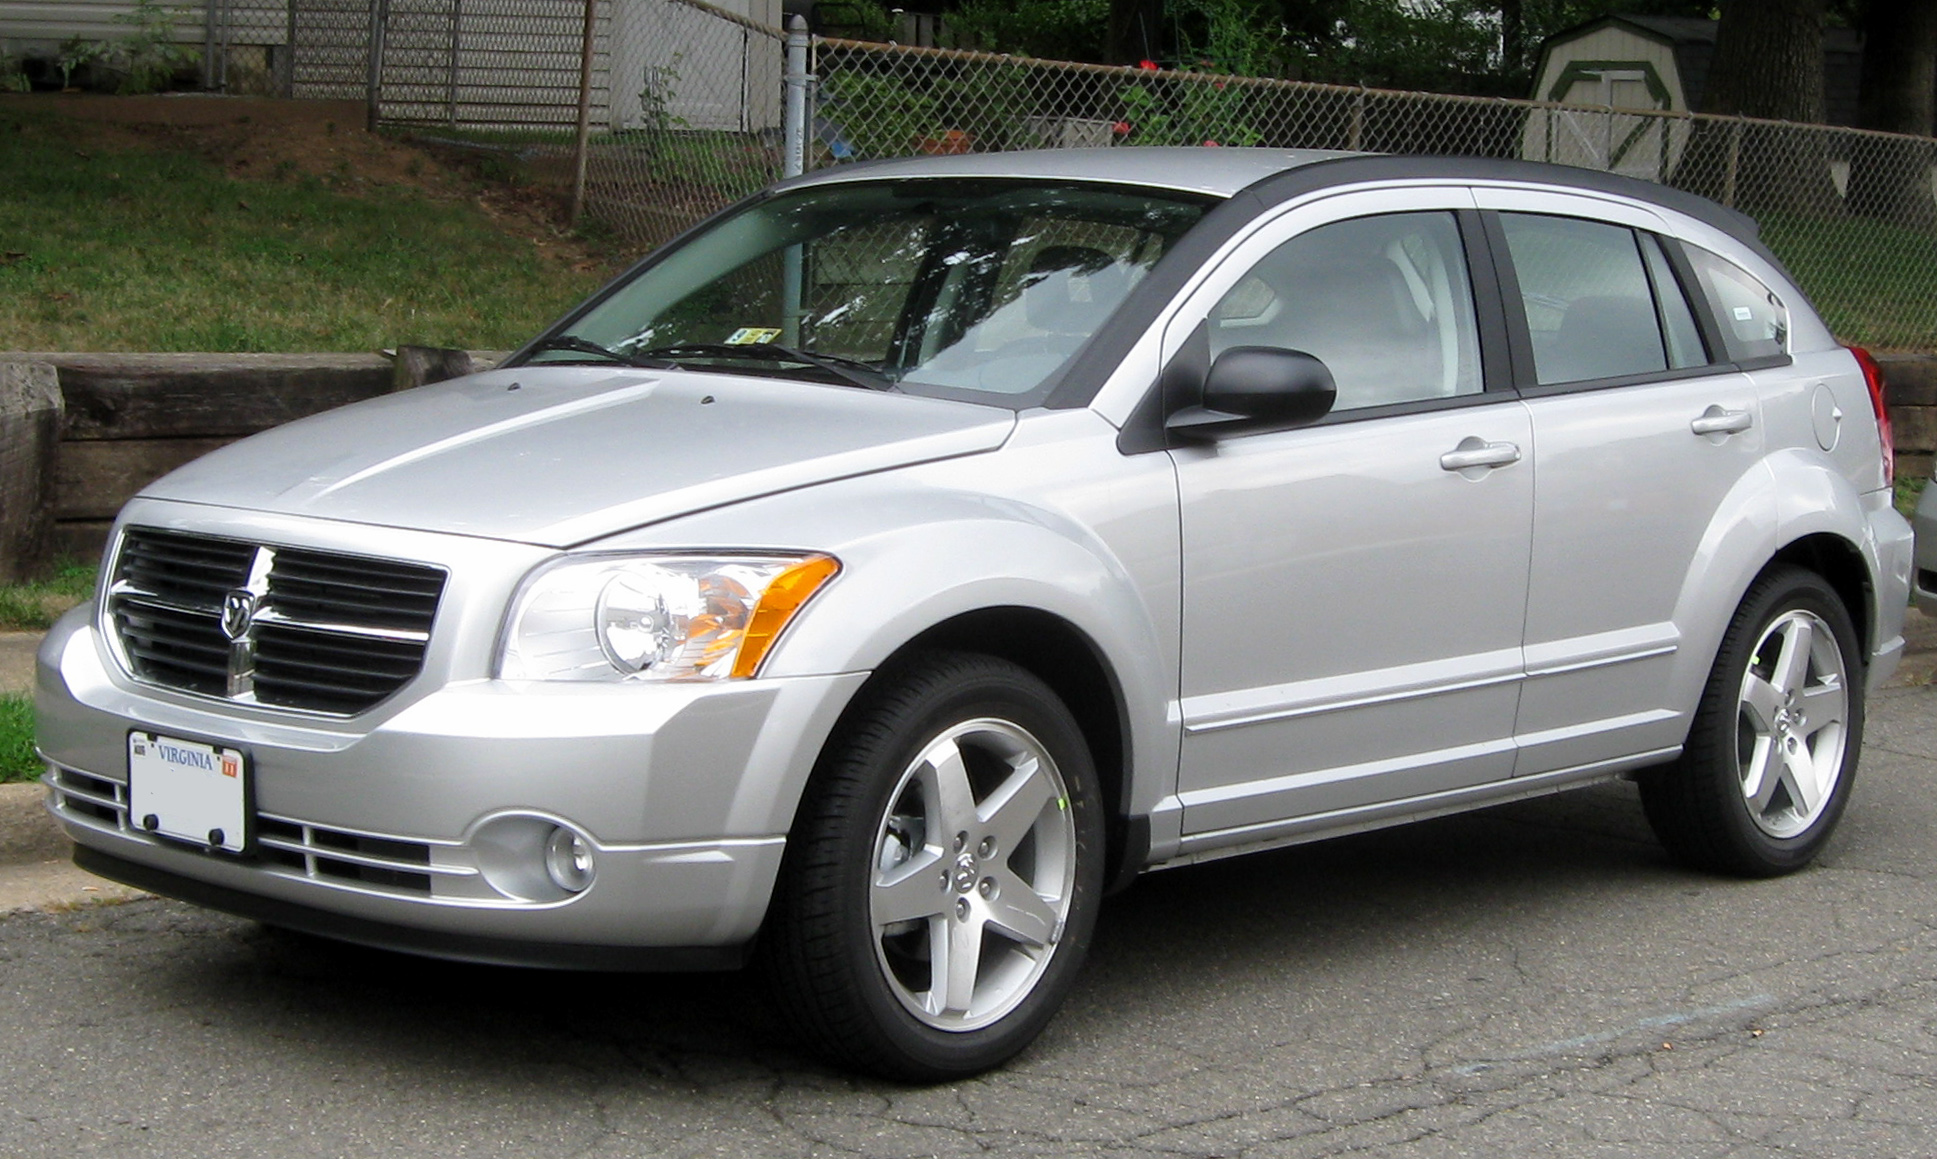 Pictures of dodge caliber #1